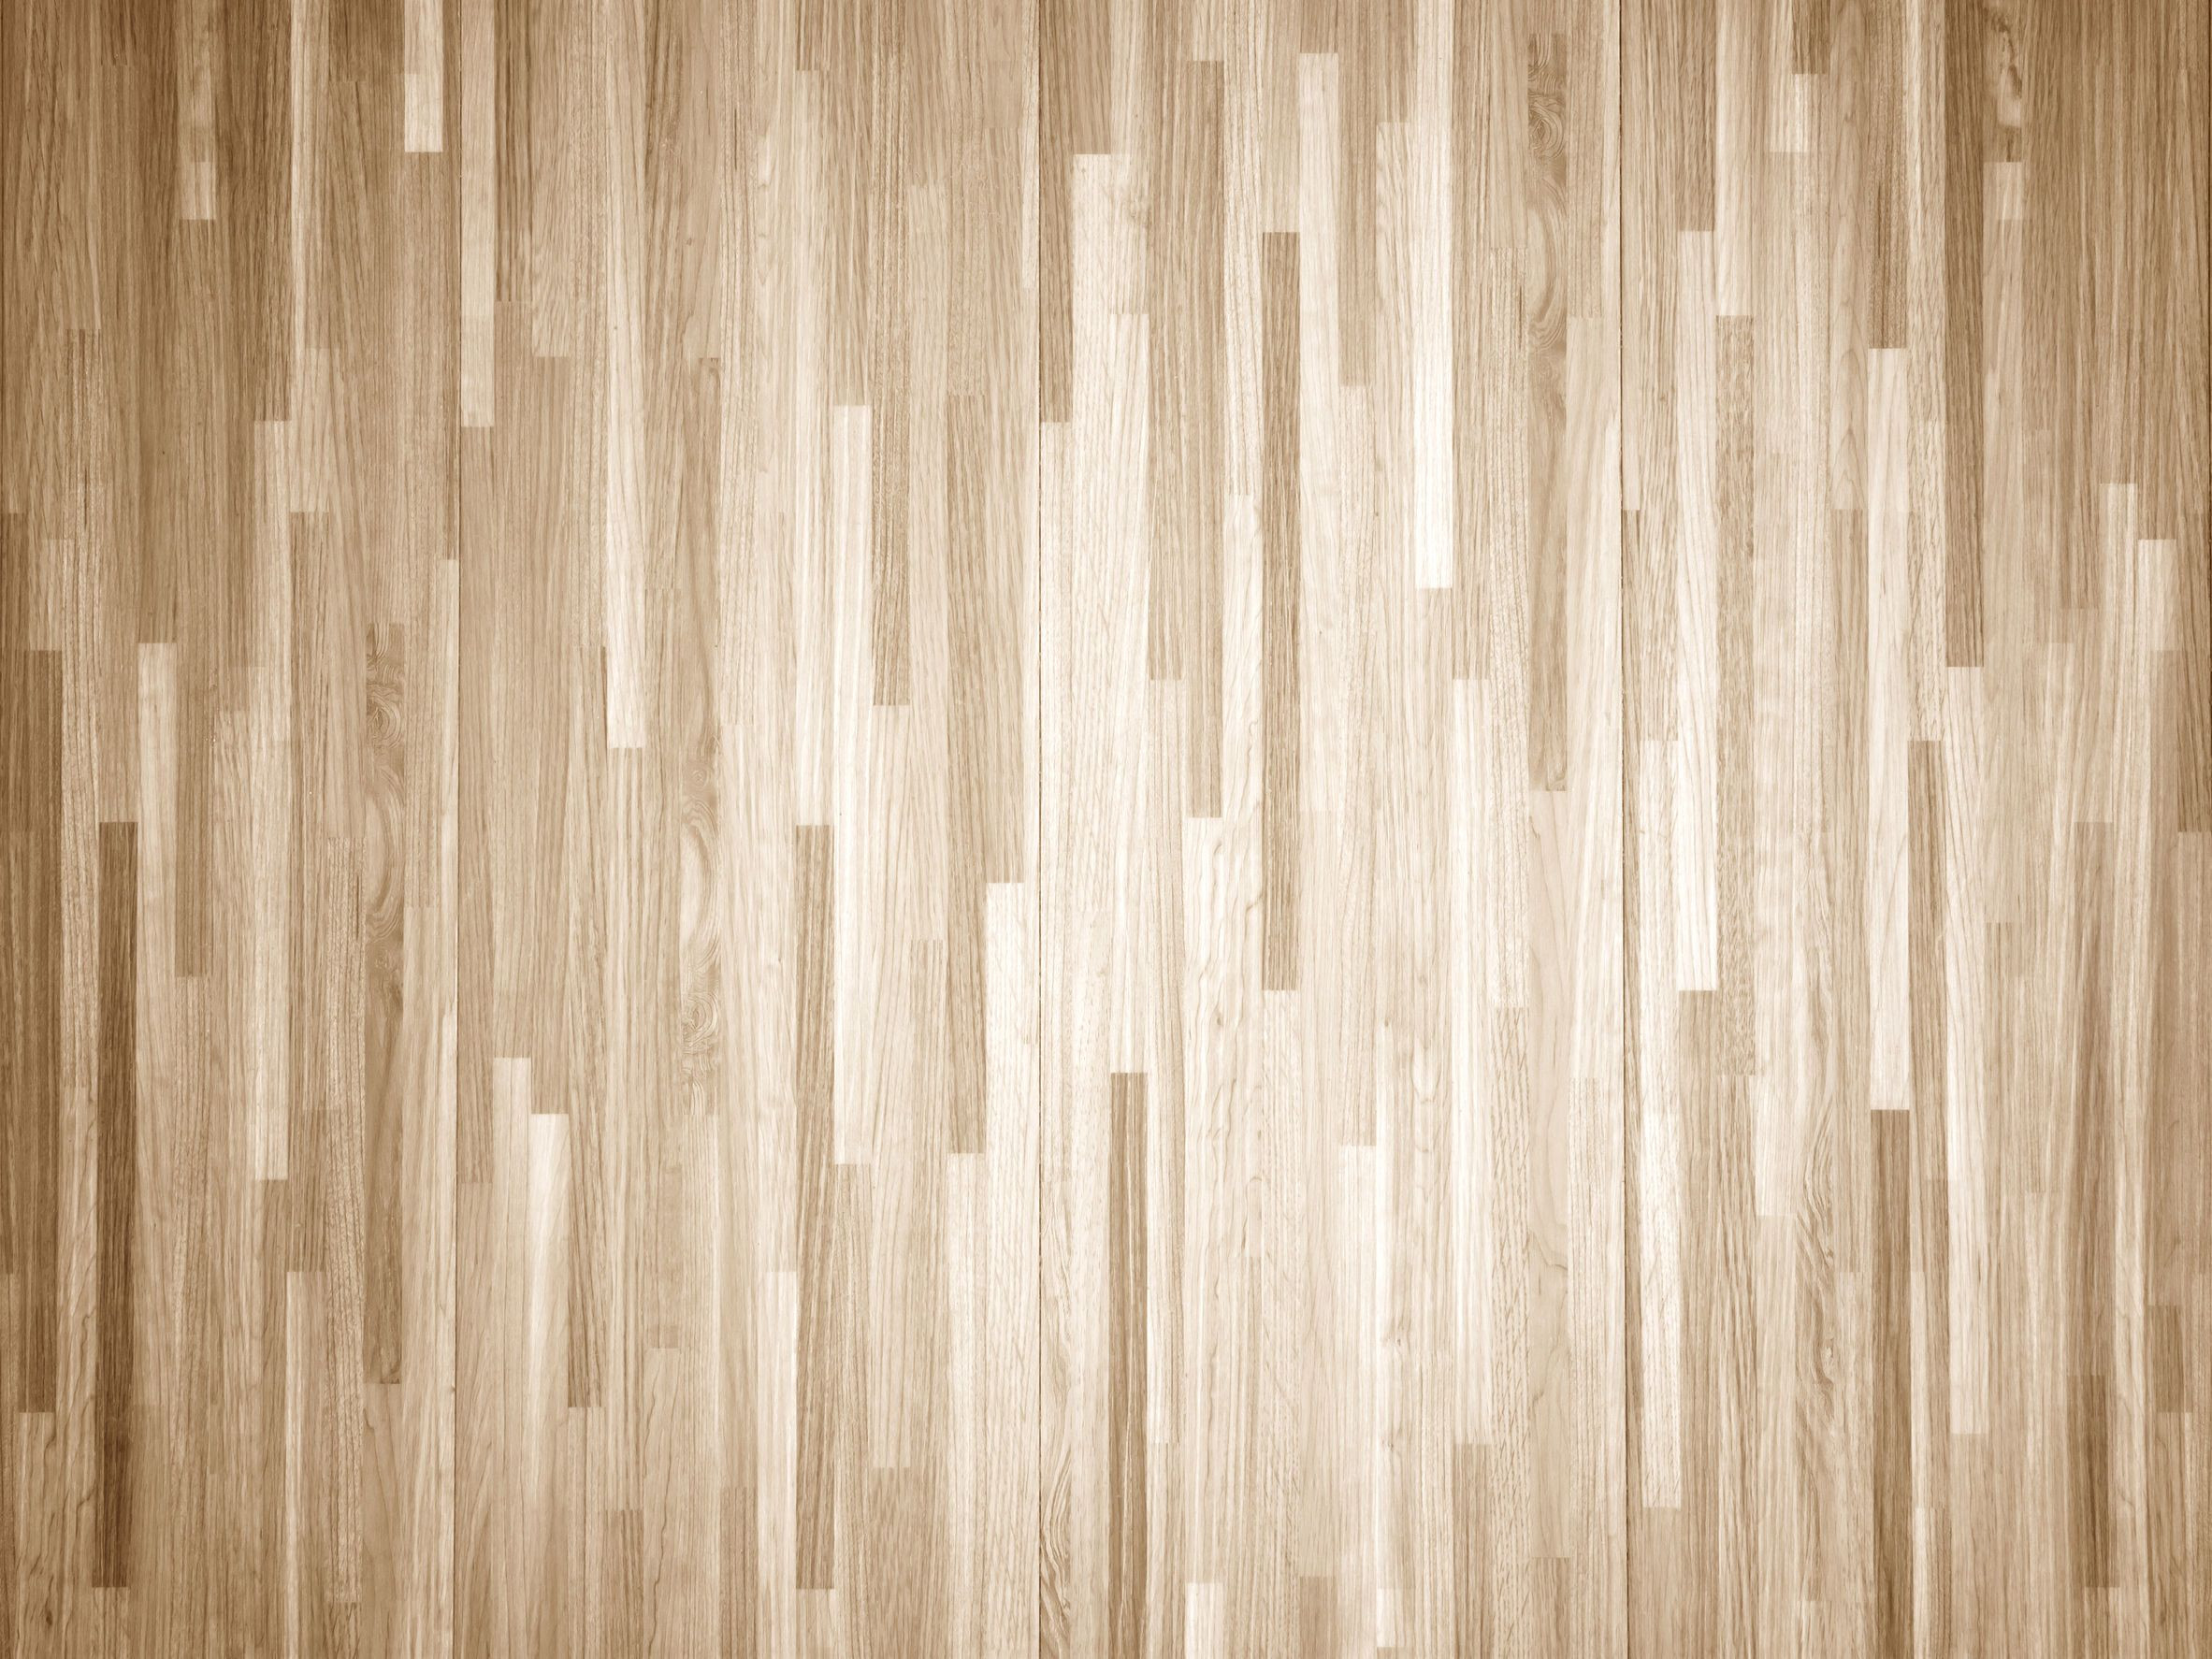 12 Awesome Above All Hardwood Floors 2021 free download above all hardwood floors of how to chemically strip wood floors woodfloordoctor com for you